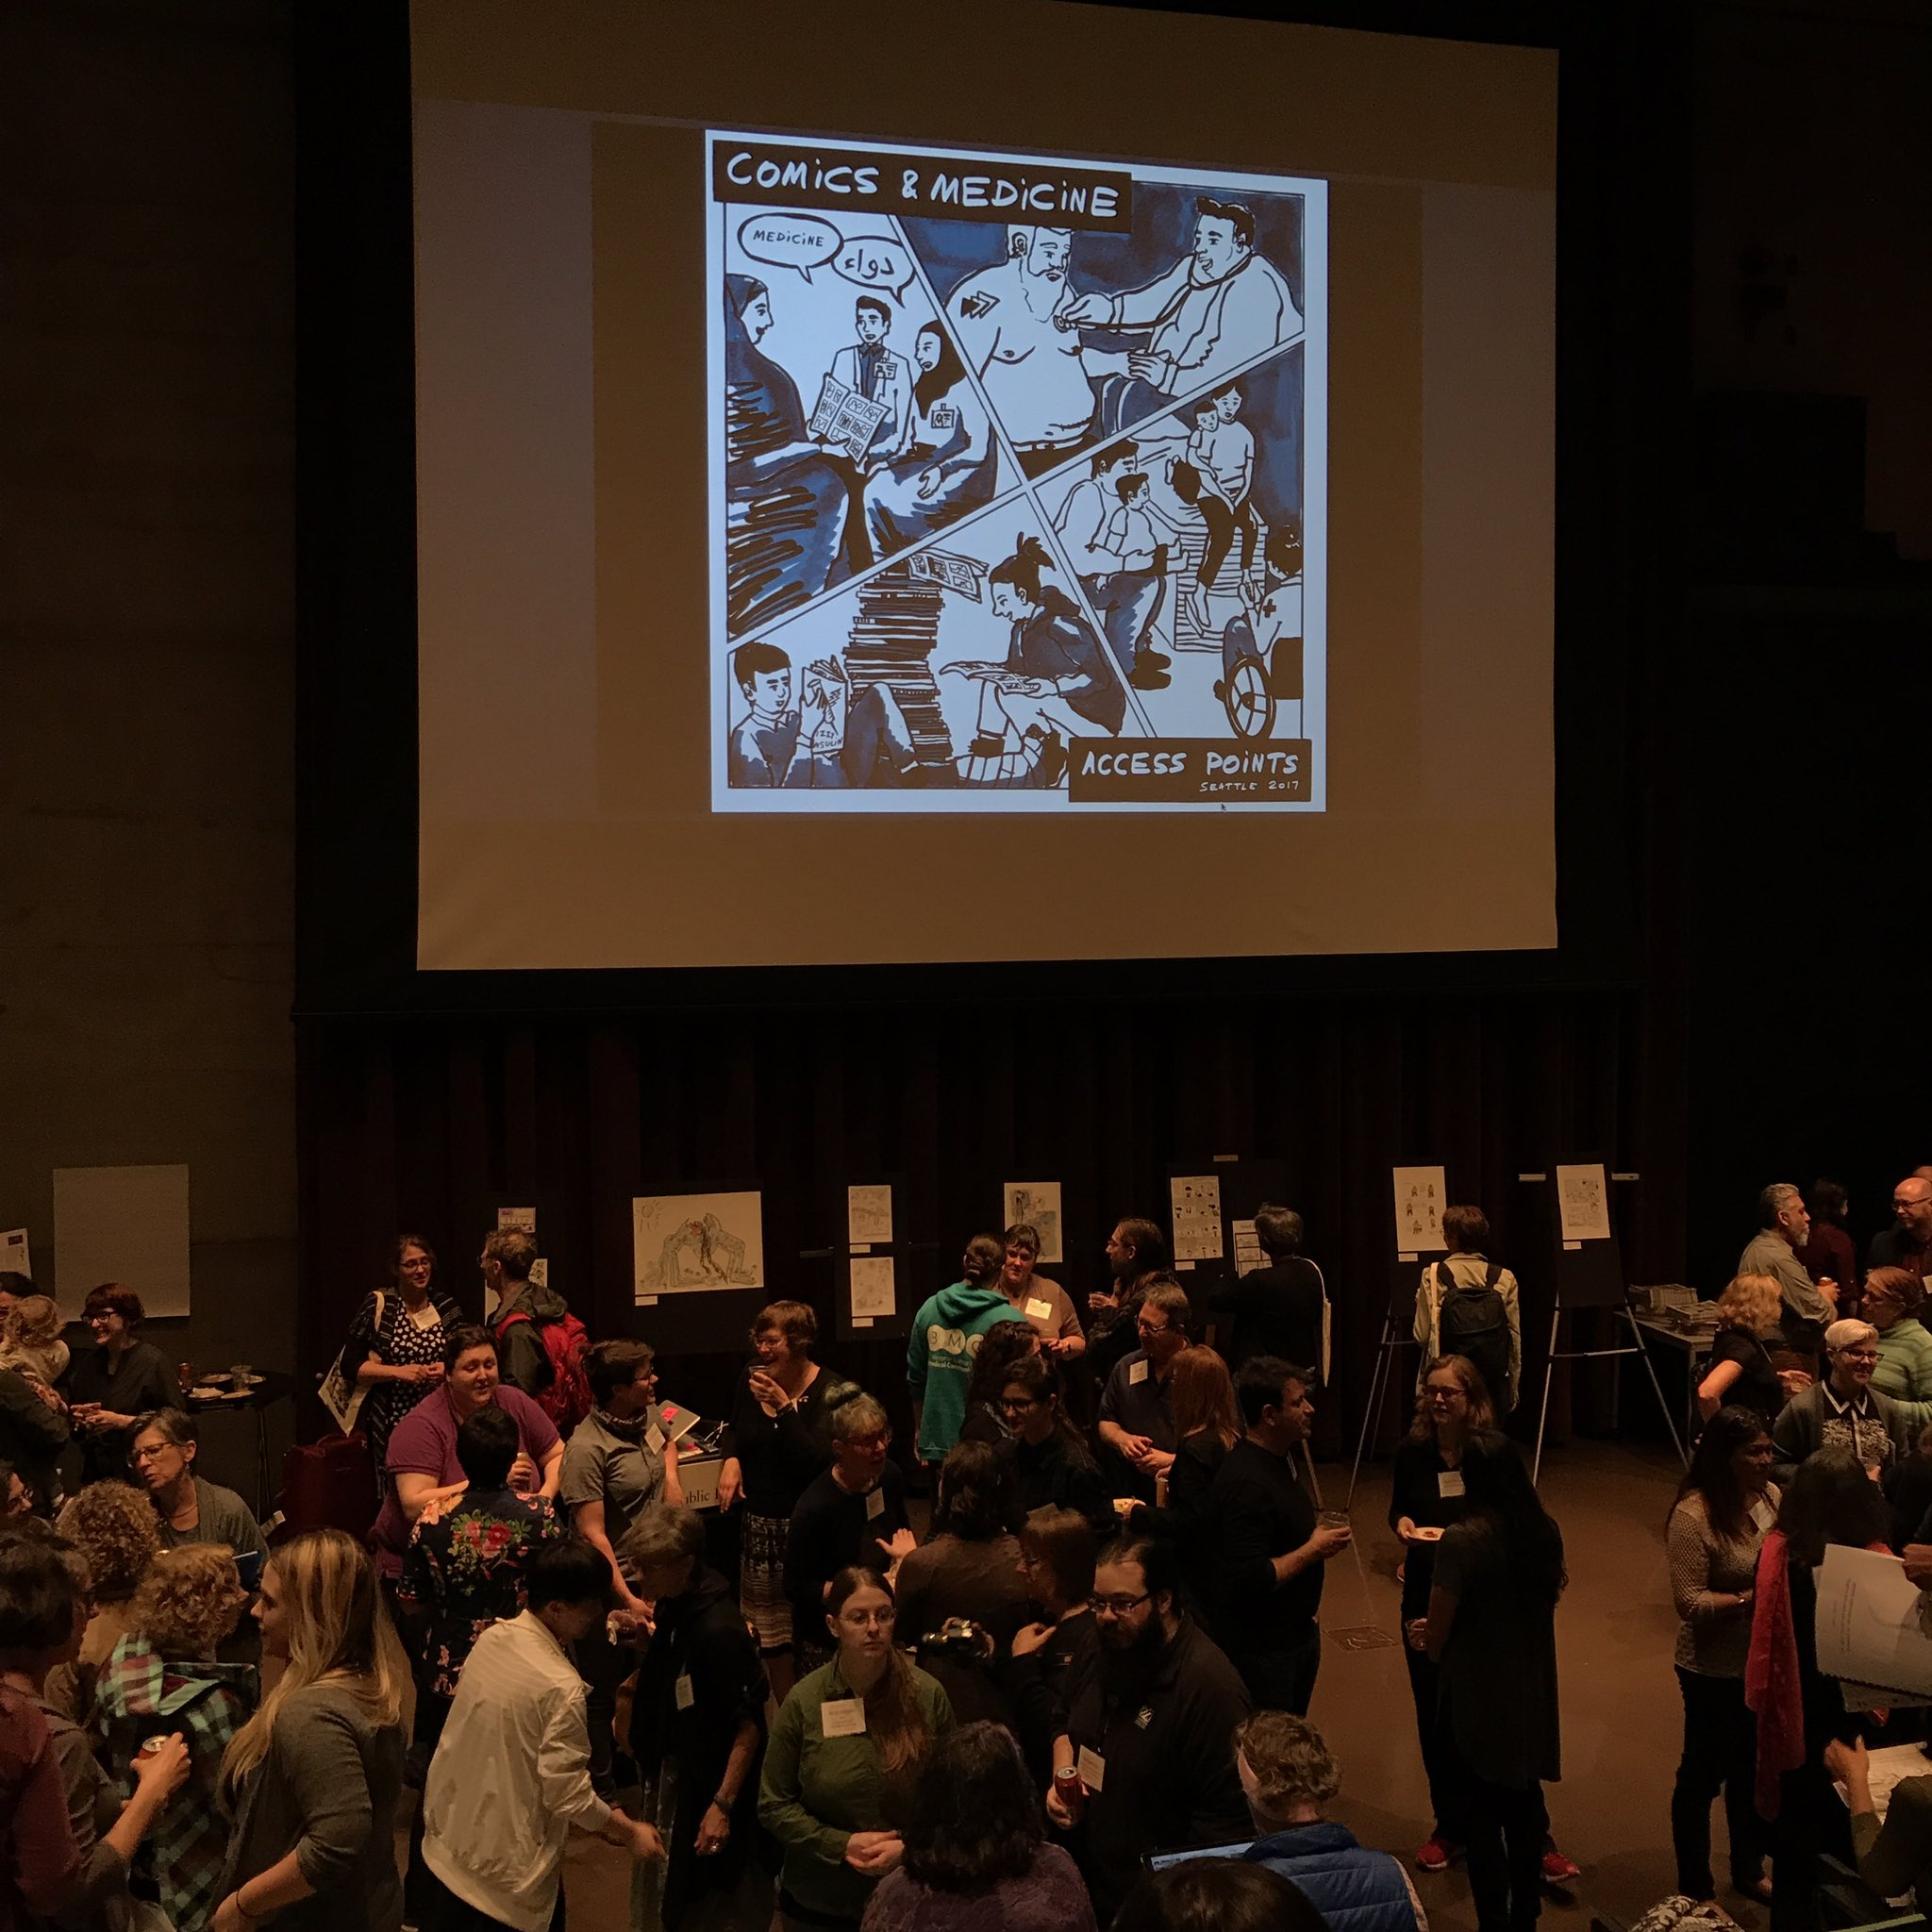 Opening reception for Graphic Medicine 2017 #ComicsMedicineSeattle https://t.co/7hpXMvwfDY